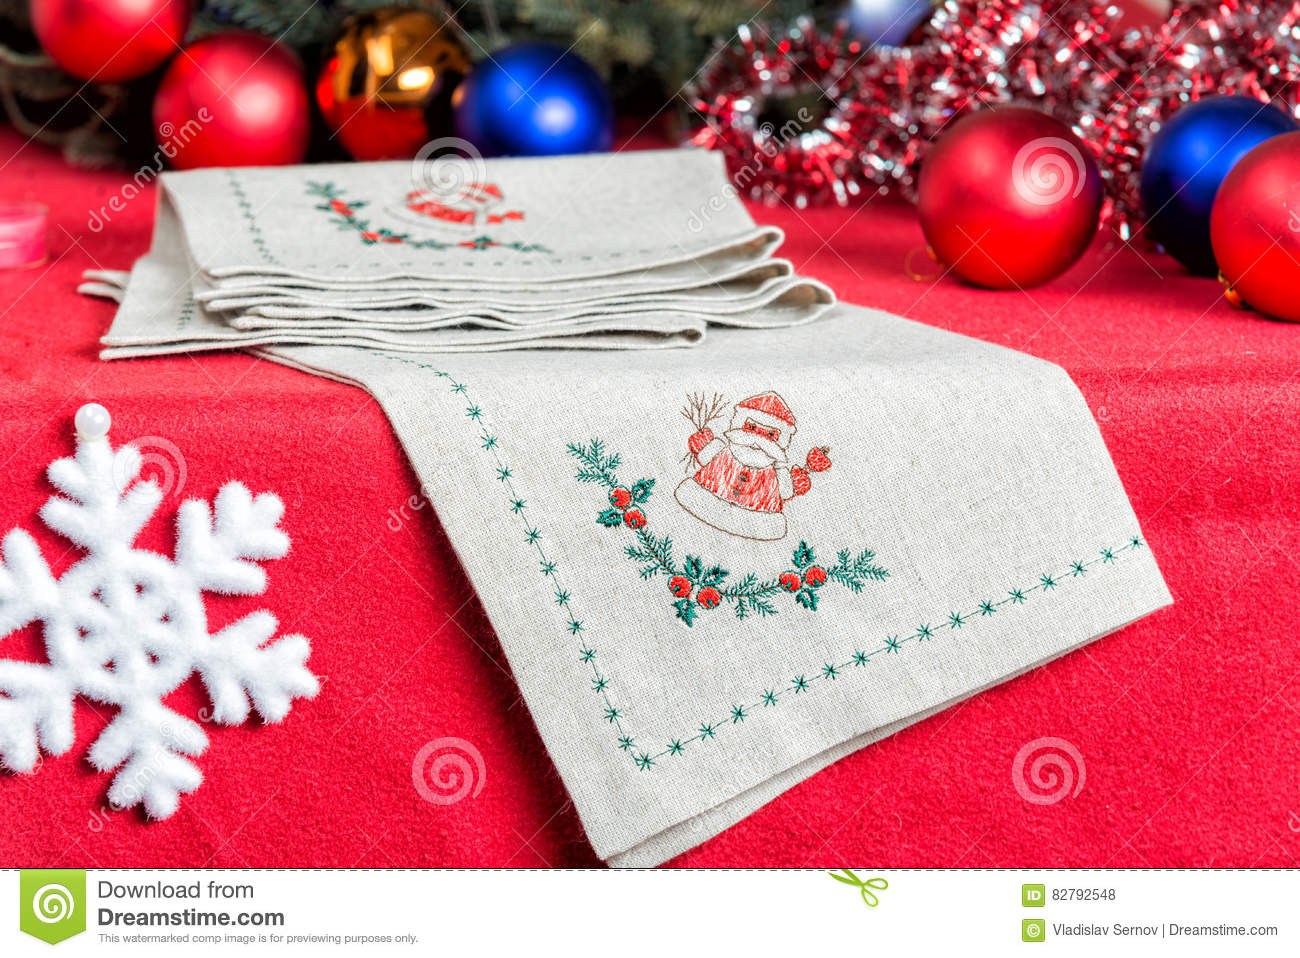 Napkins Embroidered With Santa Claus For Christmas Stock Photo Image Of Embroidery Homemade 82792548